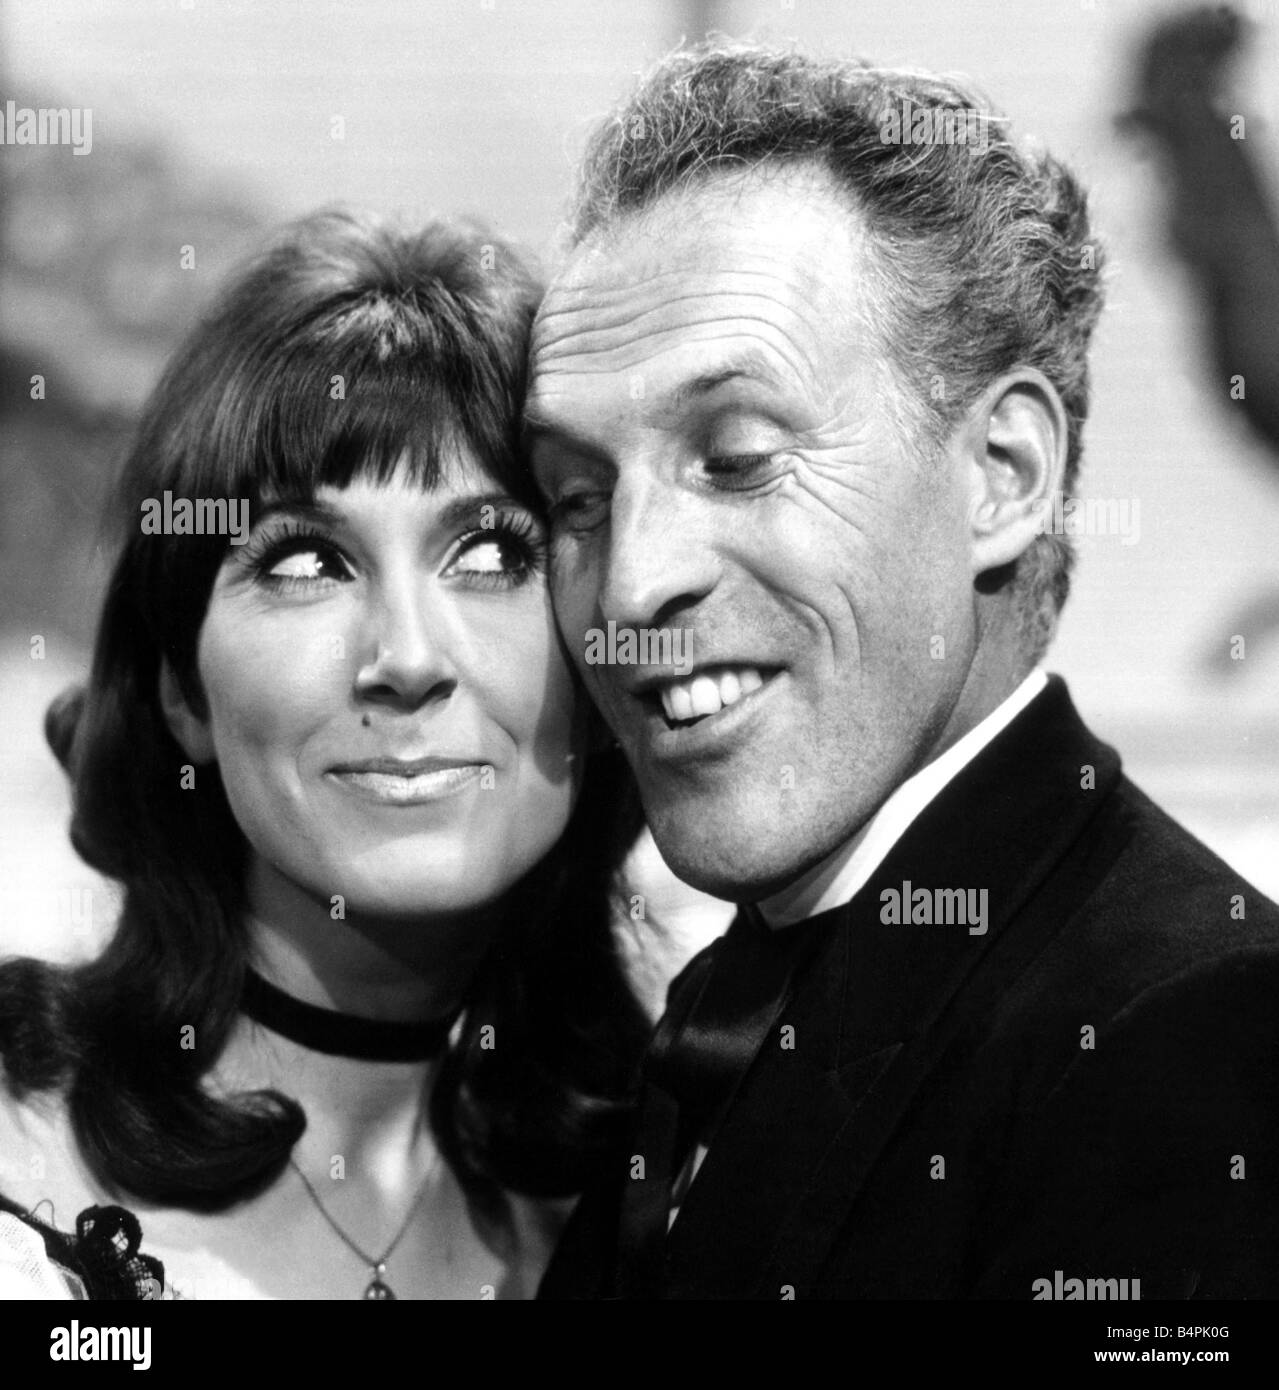 Anita Harris seen here with the host of The Bruce Forsyth Show circa 1965 - Stock Image